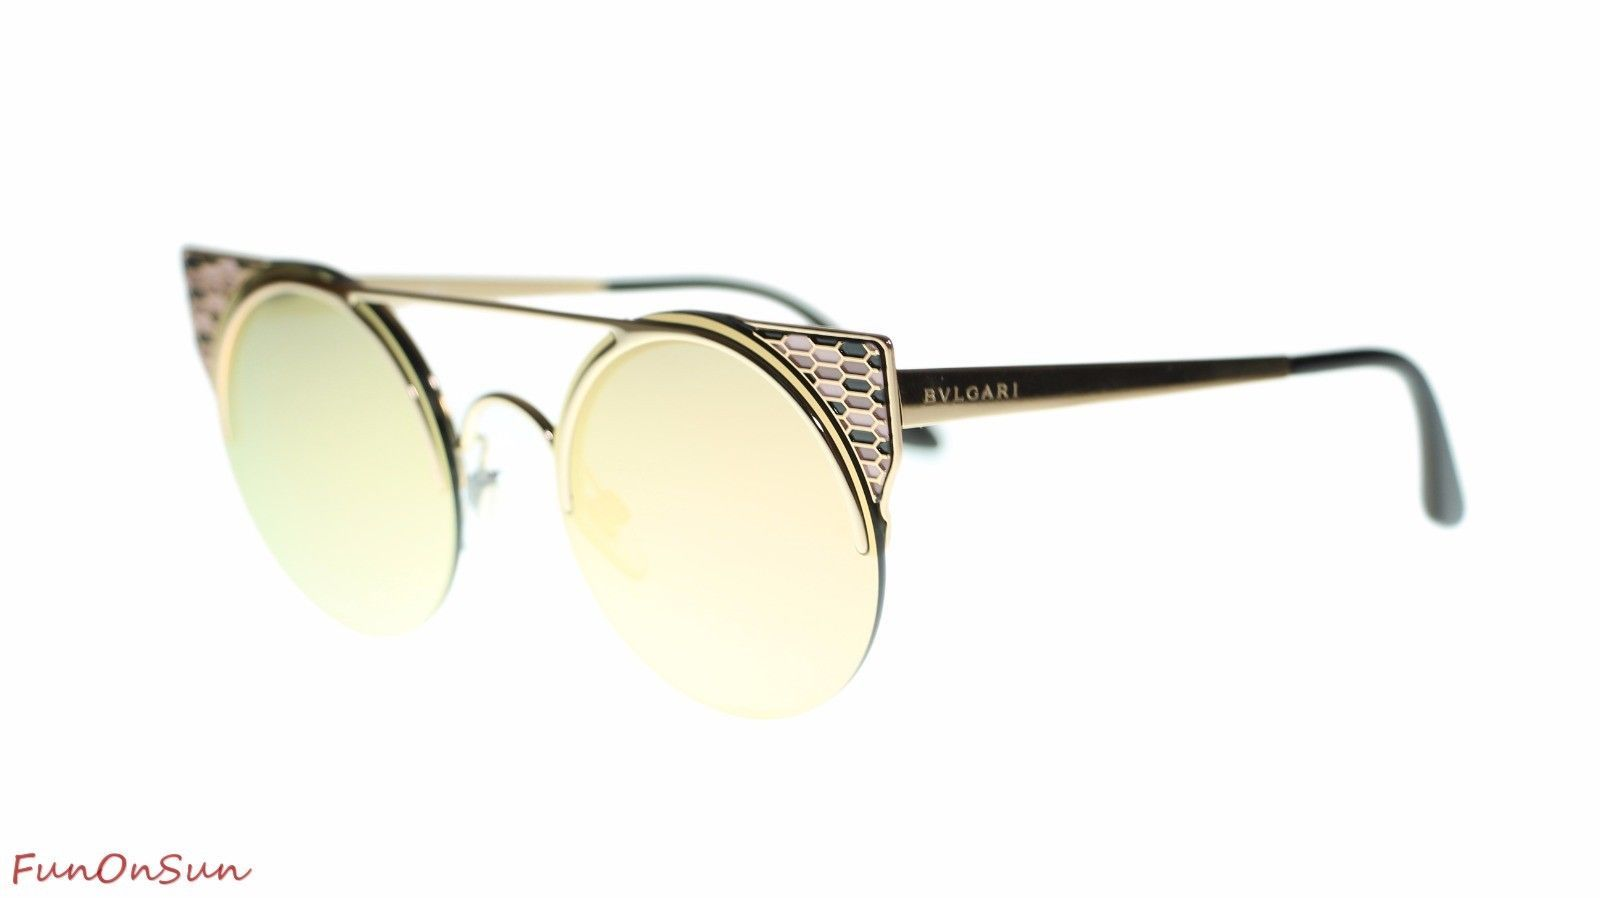 59a79689e9568 S l1600. S l1600. Previous. BVLGARI Women Round Sunglasses BV6088 20144Z  Pink Gold Grey Rose Gold Lens 54mm